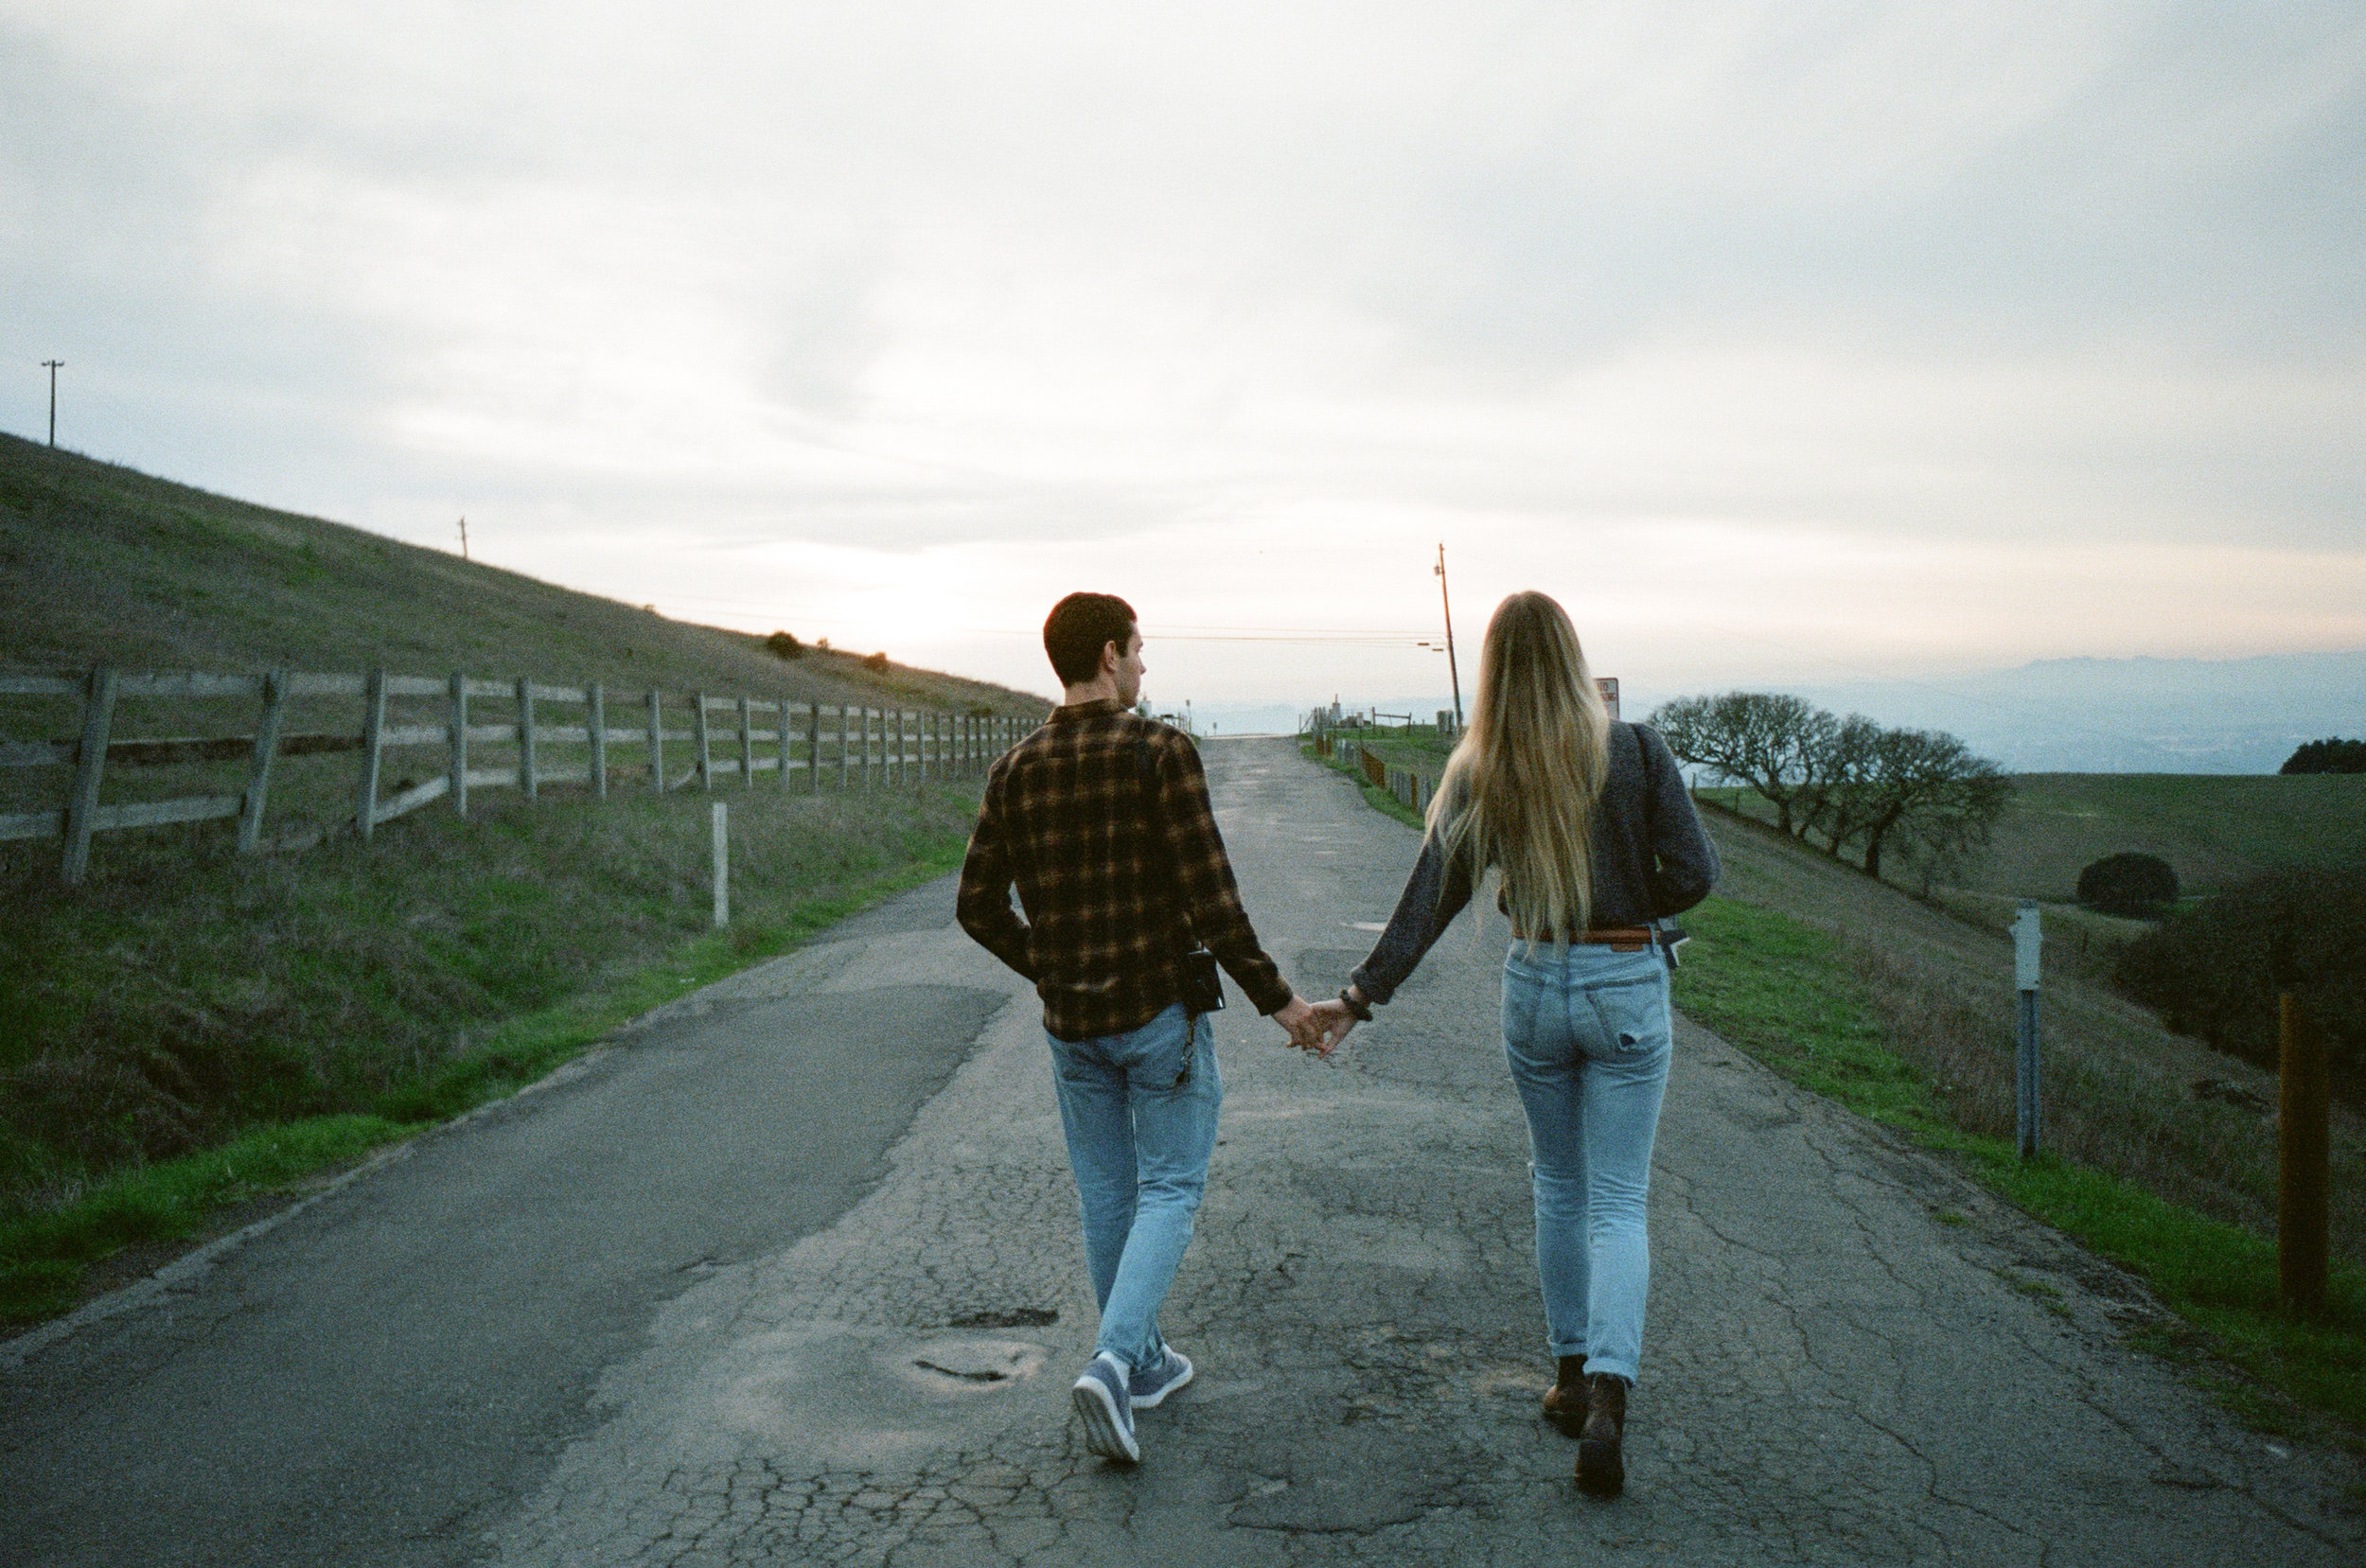 hannah&cole-california-film-jan2019-peytoncurry-000098780029.jpg